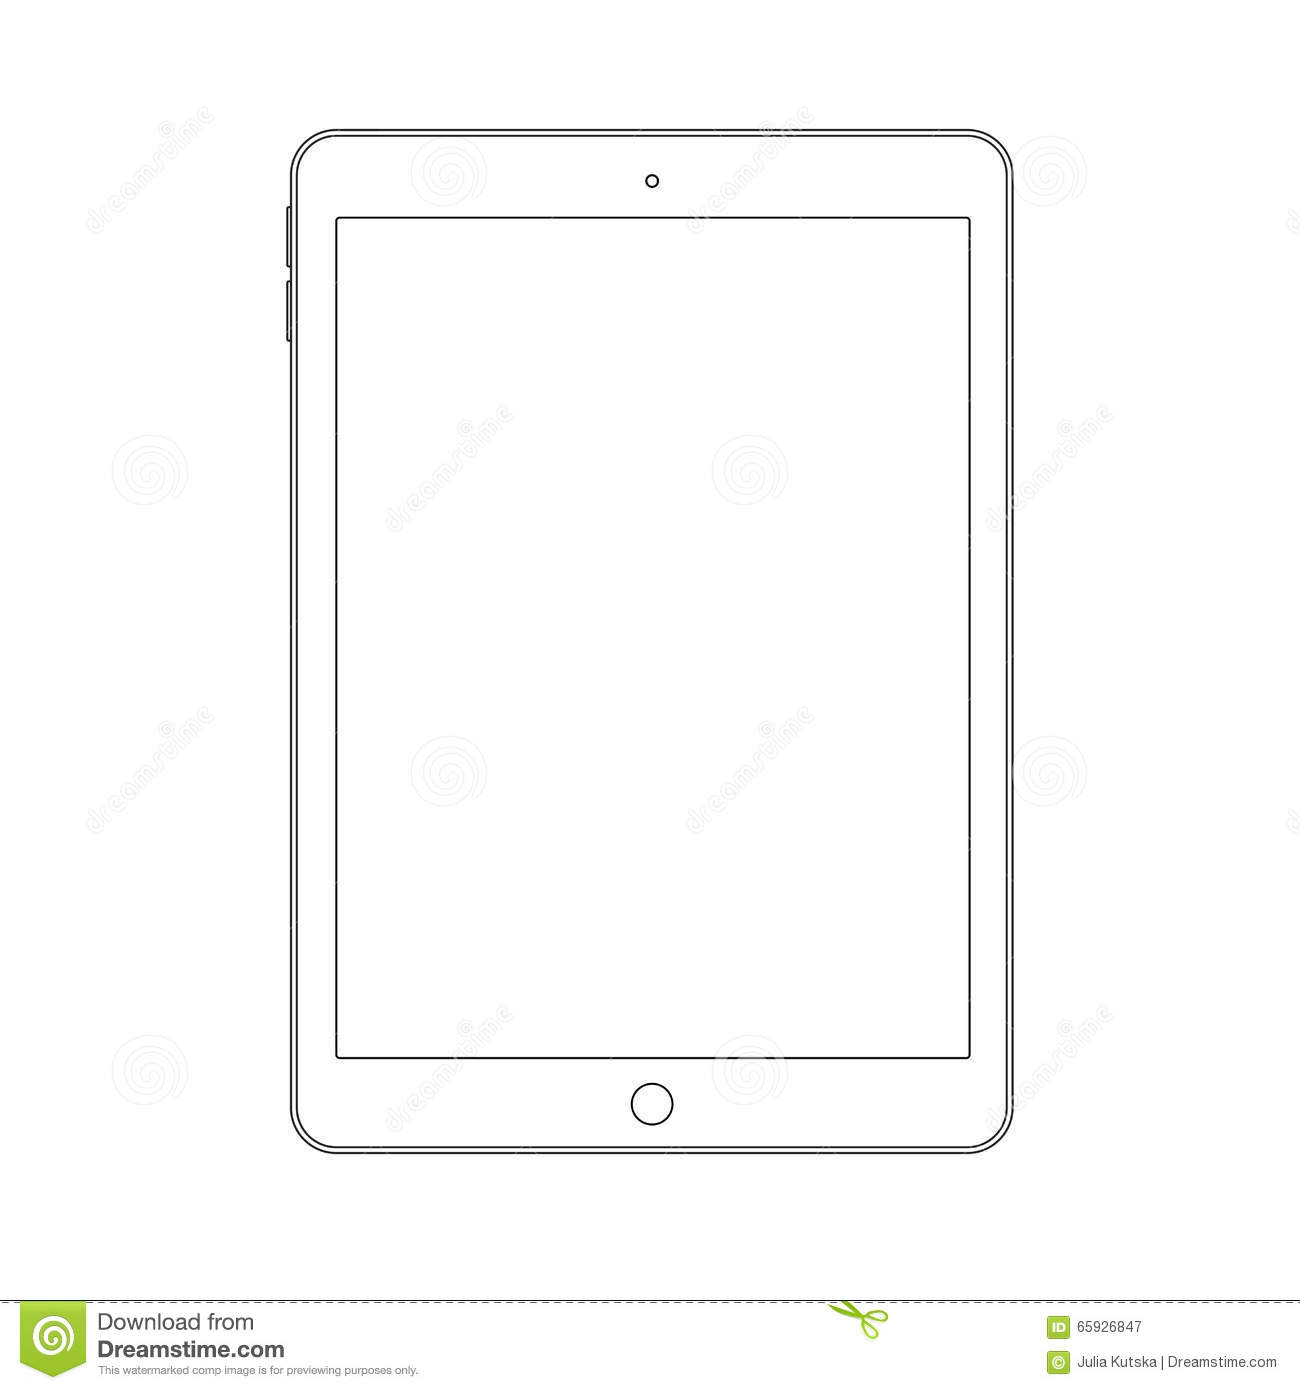 Drawing Smooth Lines In Photo With Tablet : Outline drawing tablet elegant thin line style design